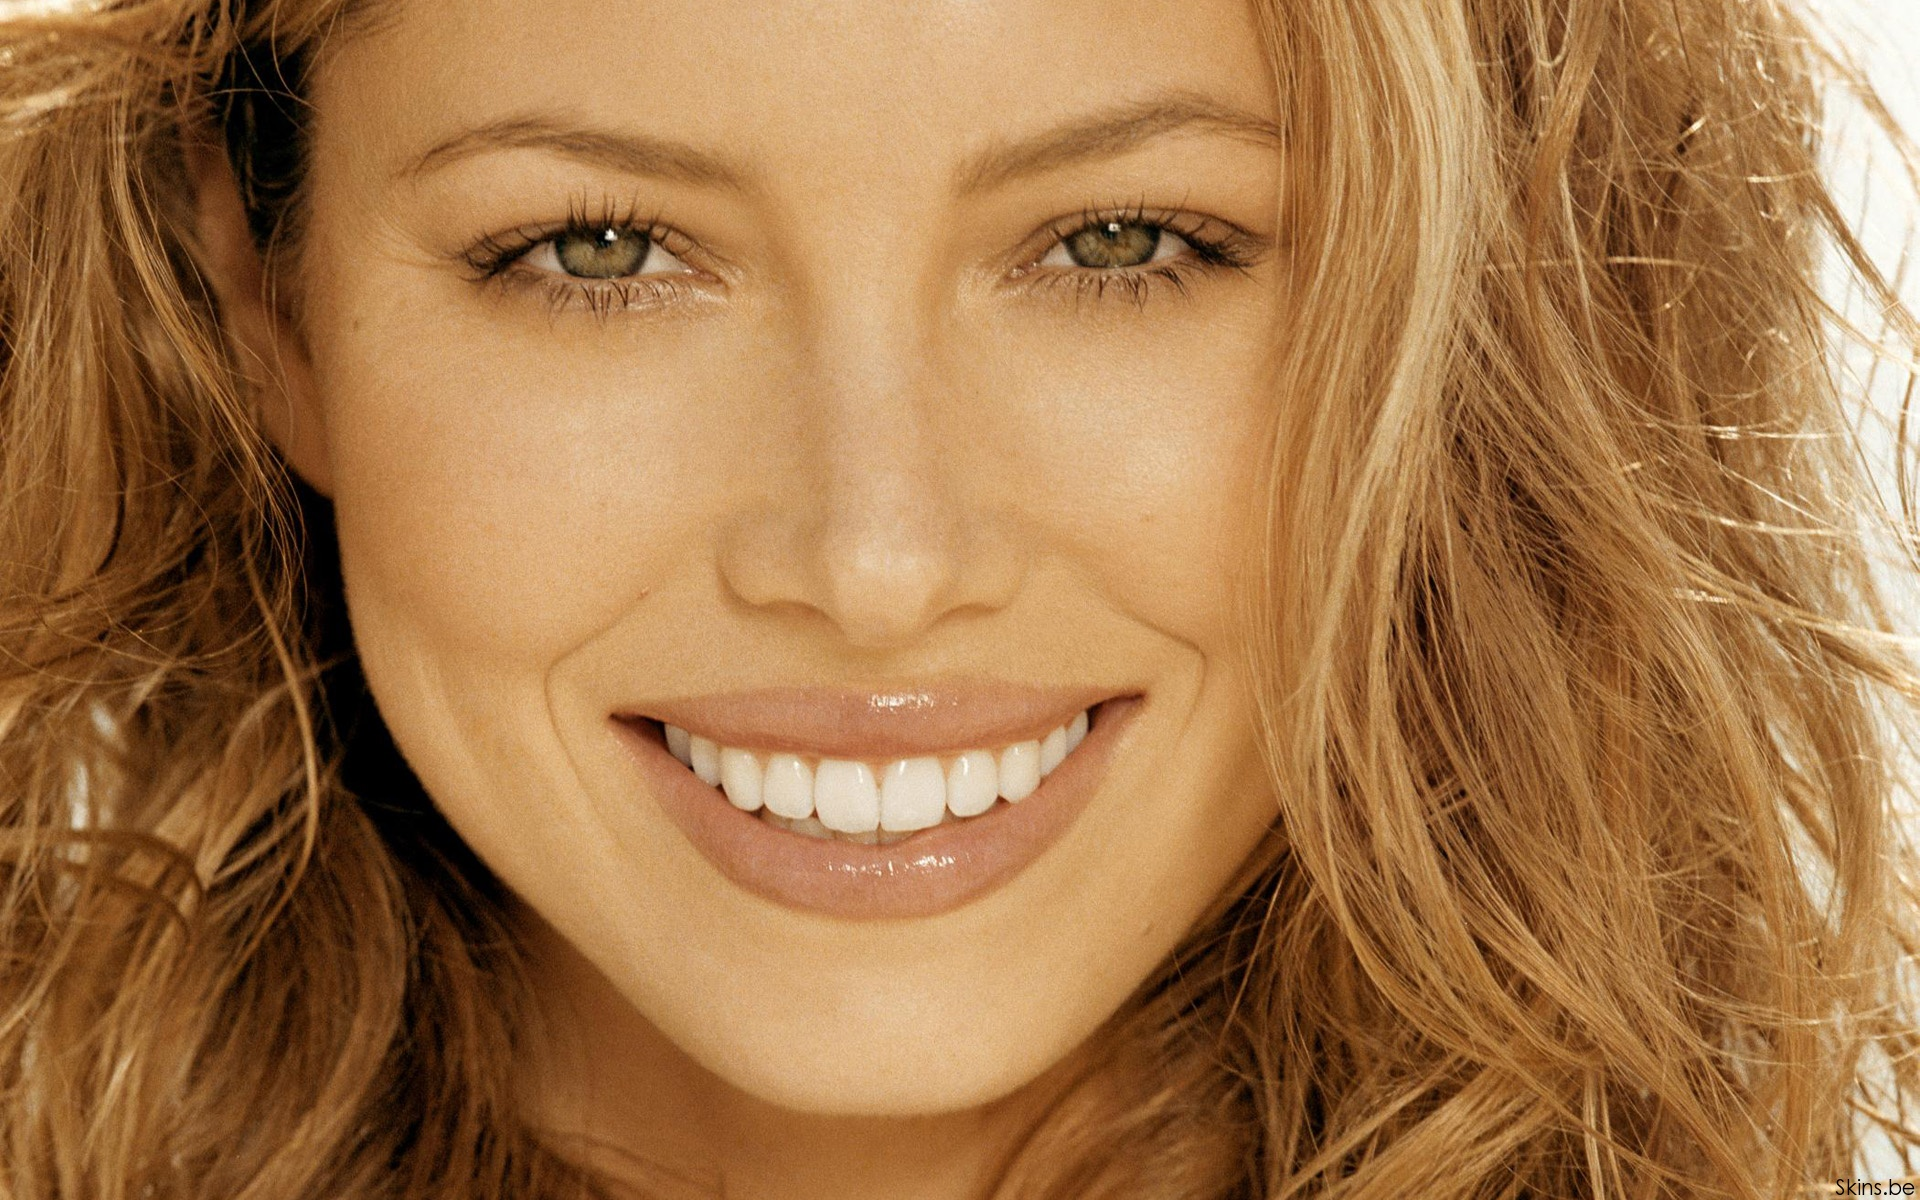 Beautiful Smile Wallpaper 68 Images: Jessica Biel Wallpapers 2015, Pictures, Images